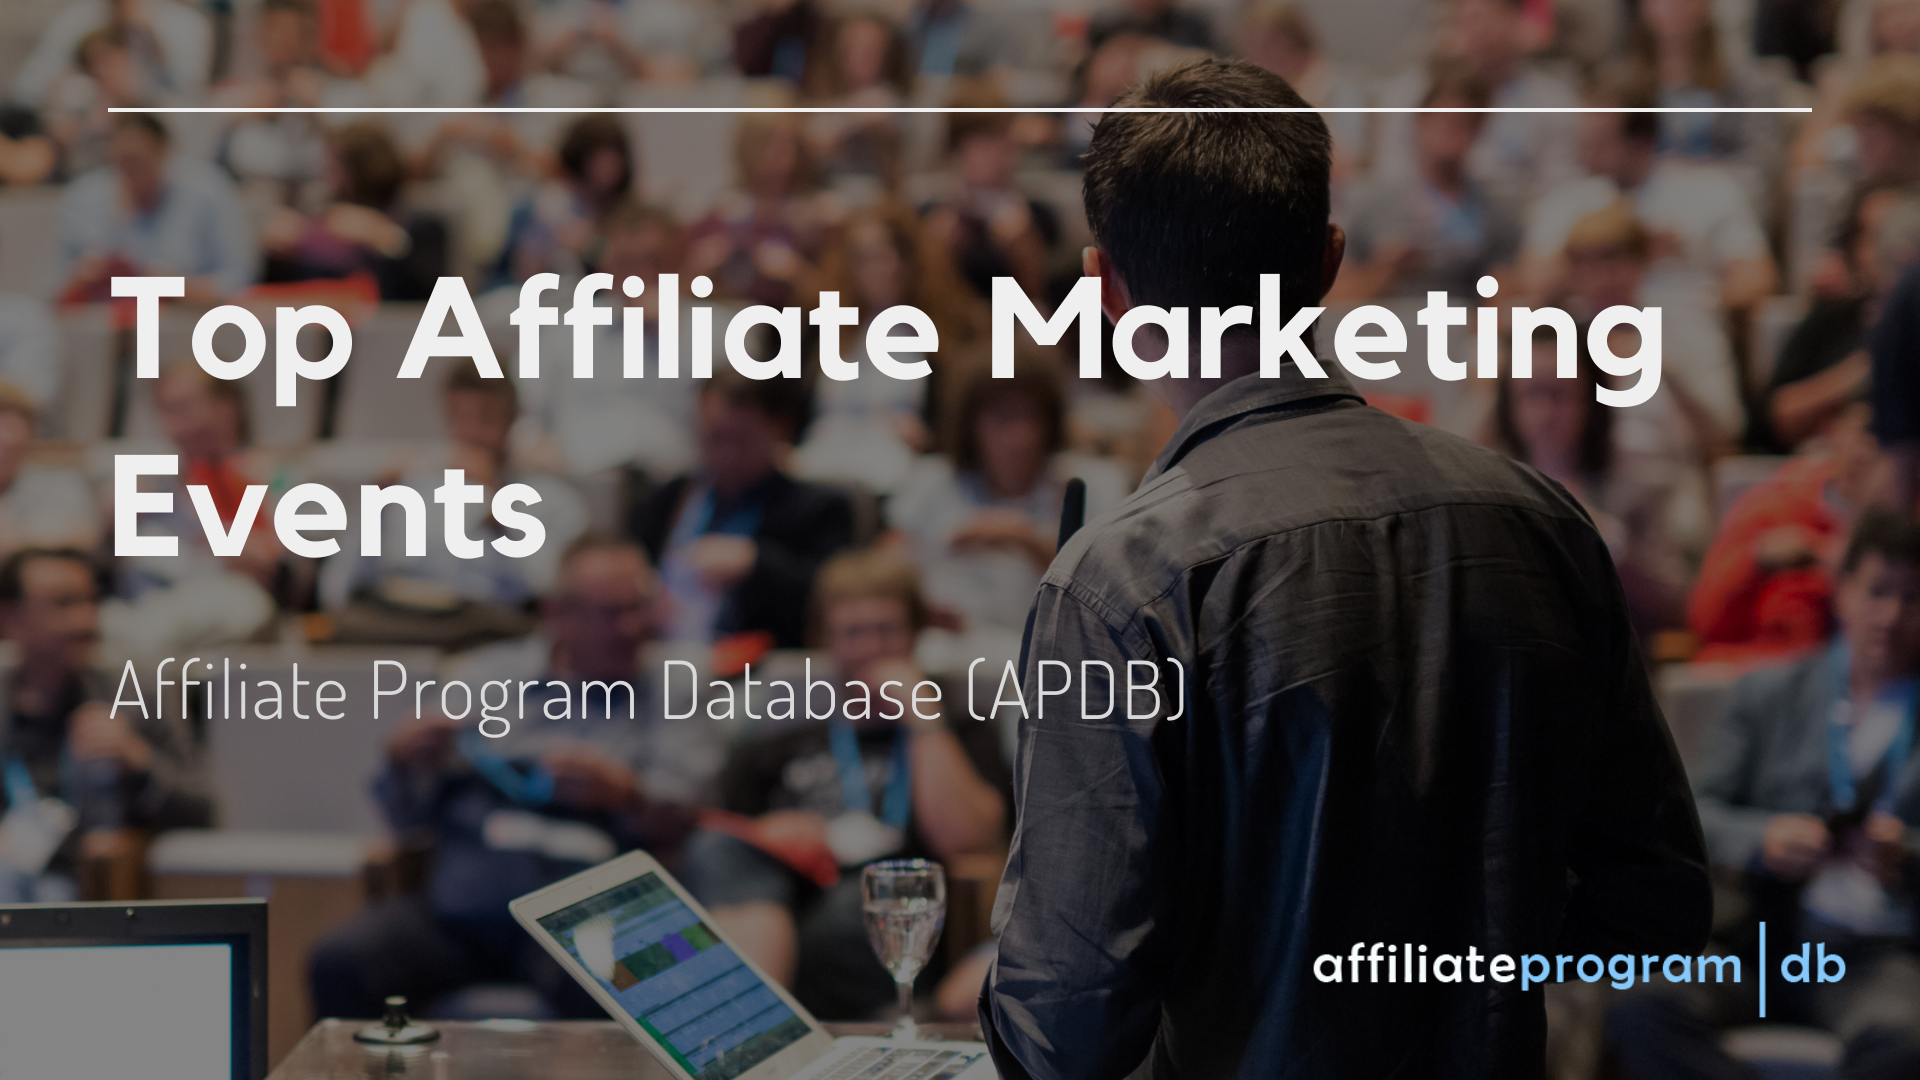 Top Affiliate Marketing Events